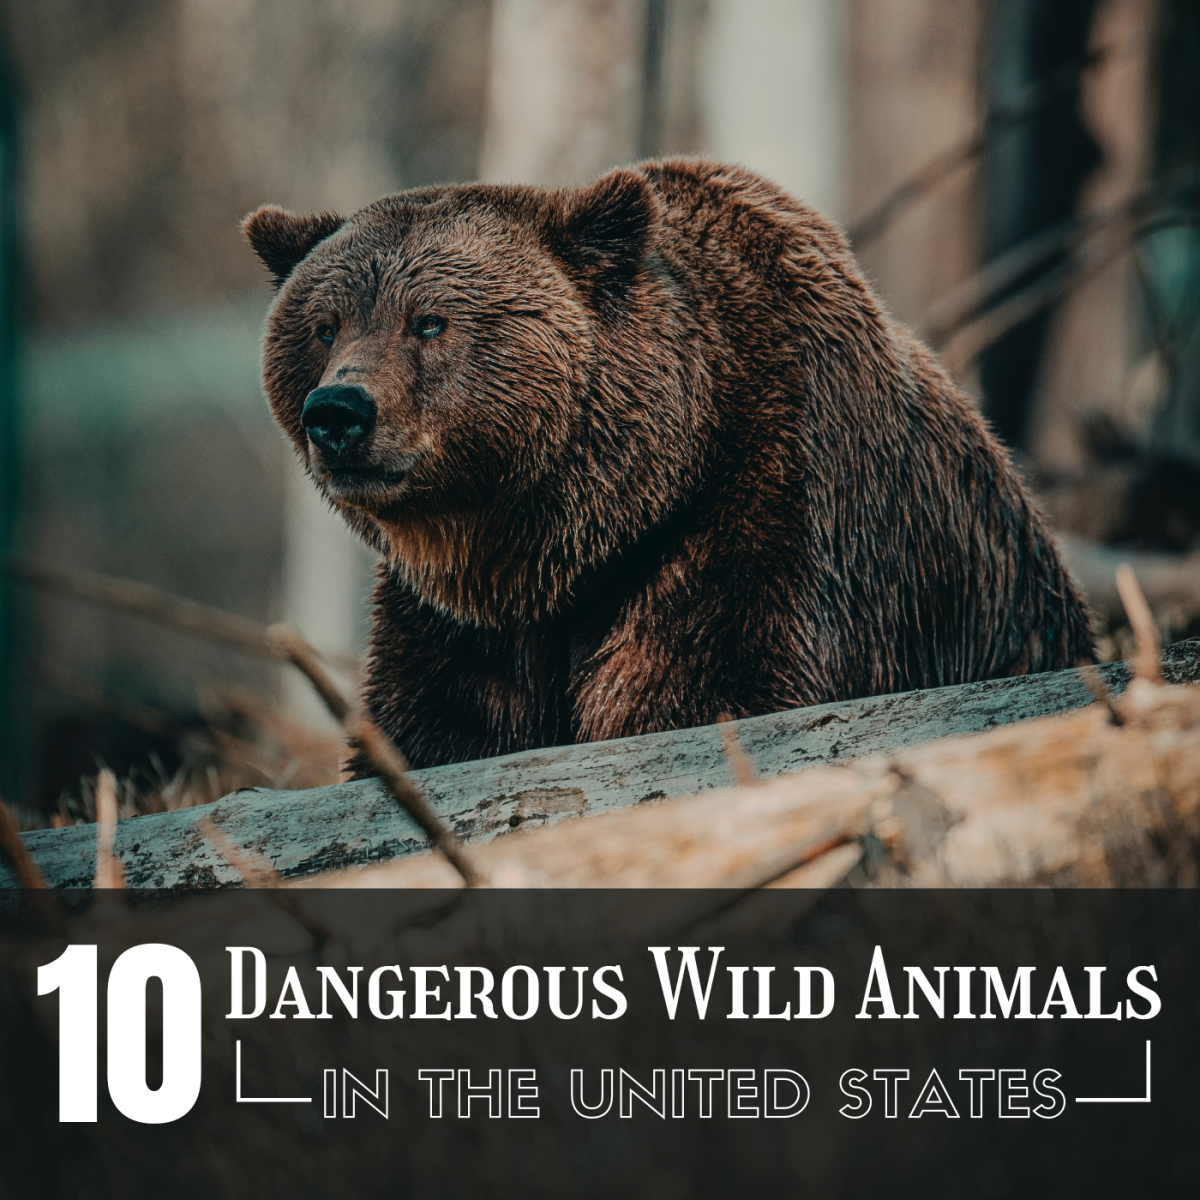 The Top 10 Most Dangerous Wild Animals in the U.S.A.